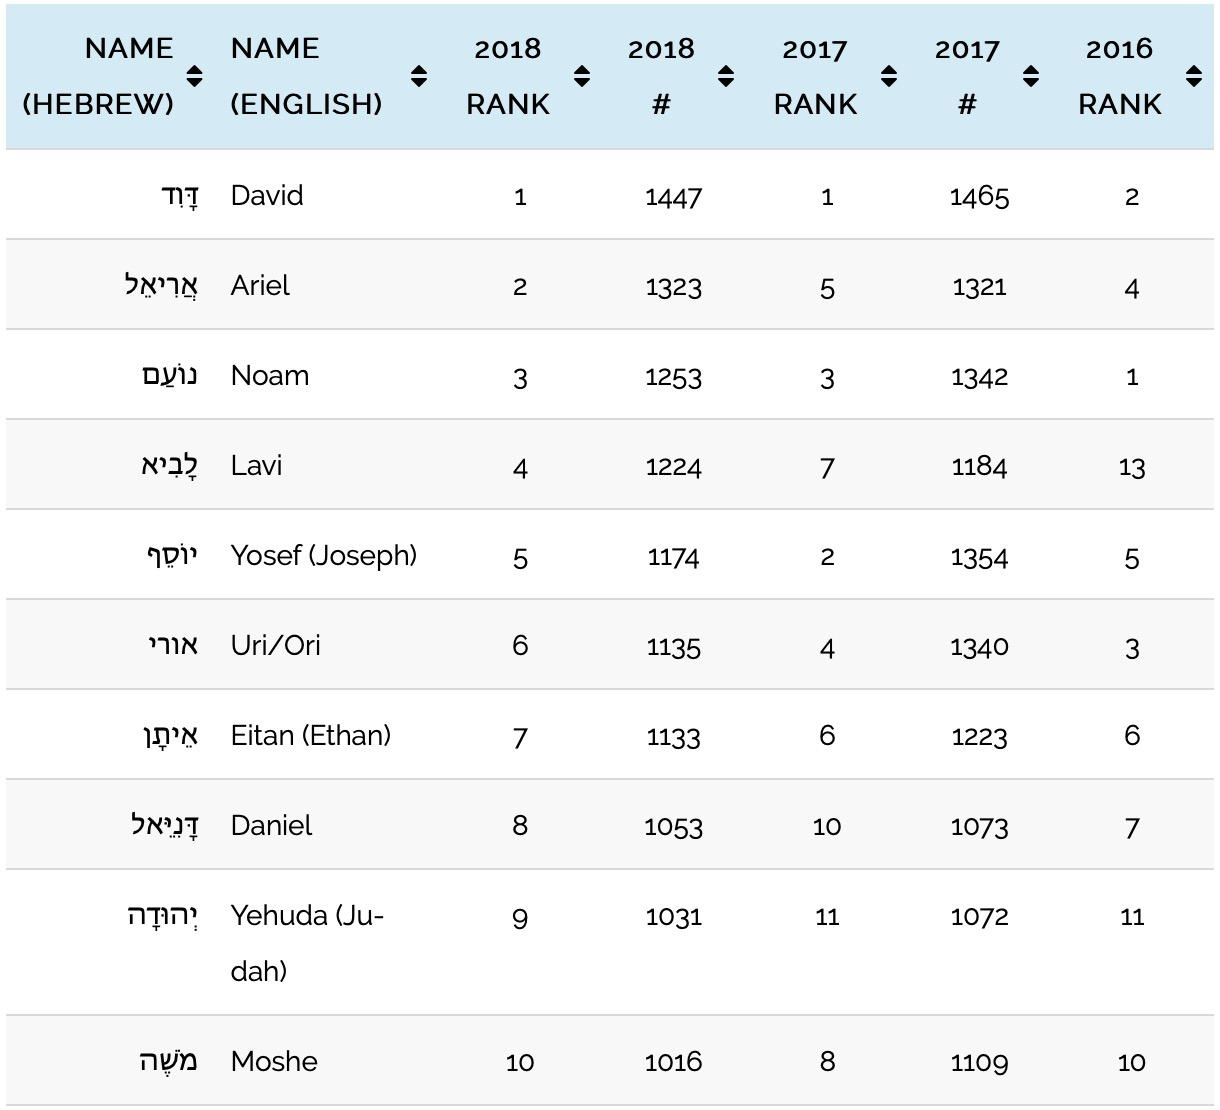 101 Most Popular Jewish Boys Names in Israel in 2017 and ...